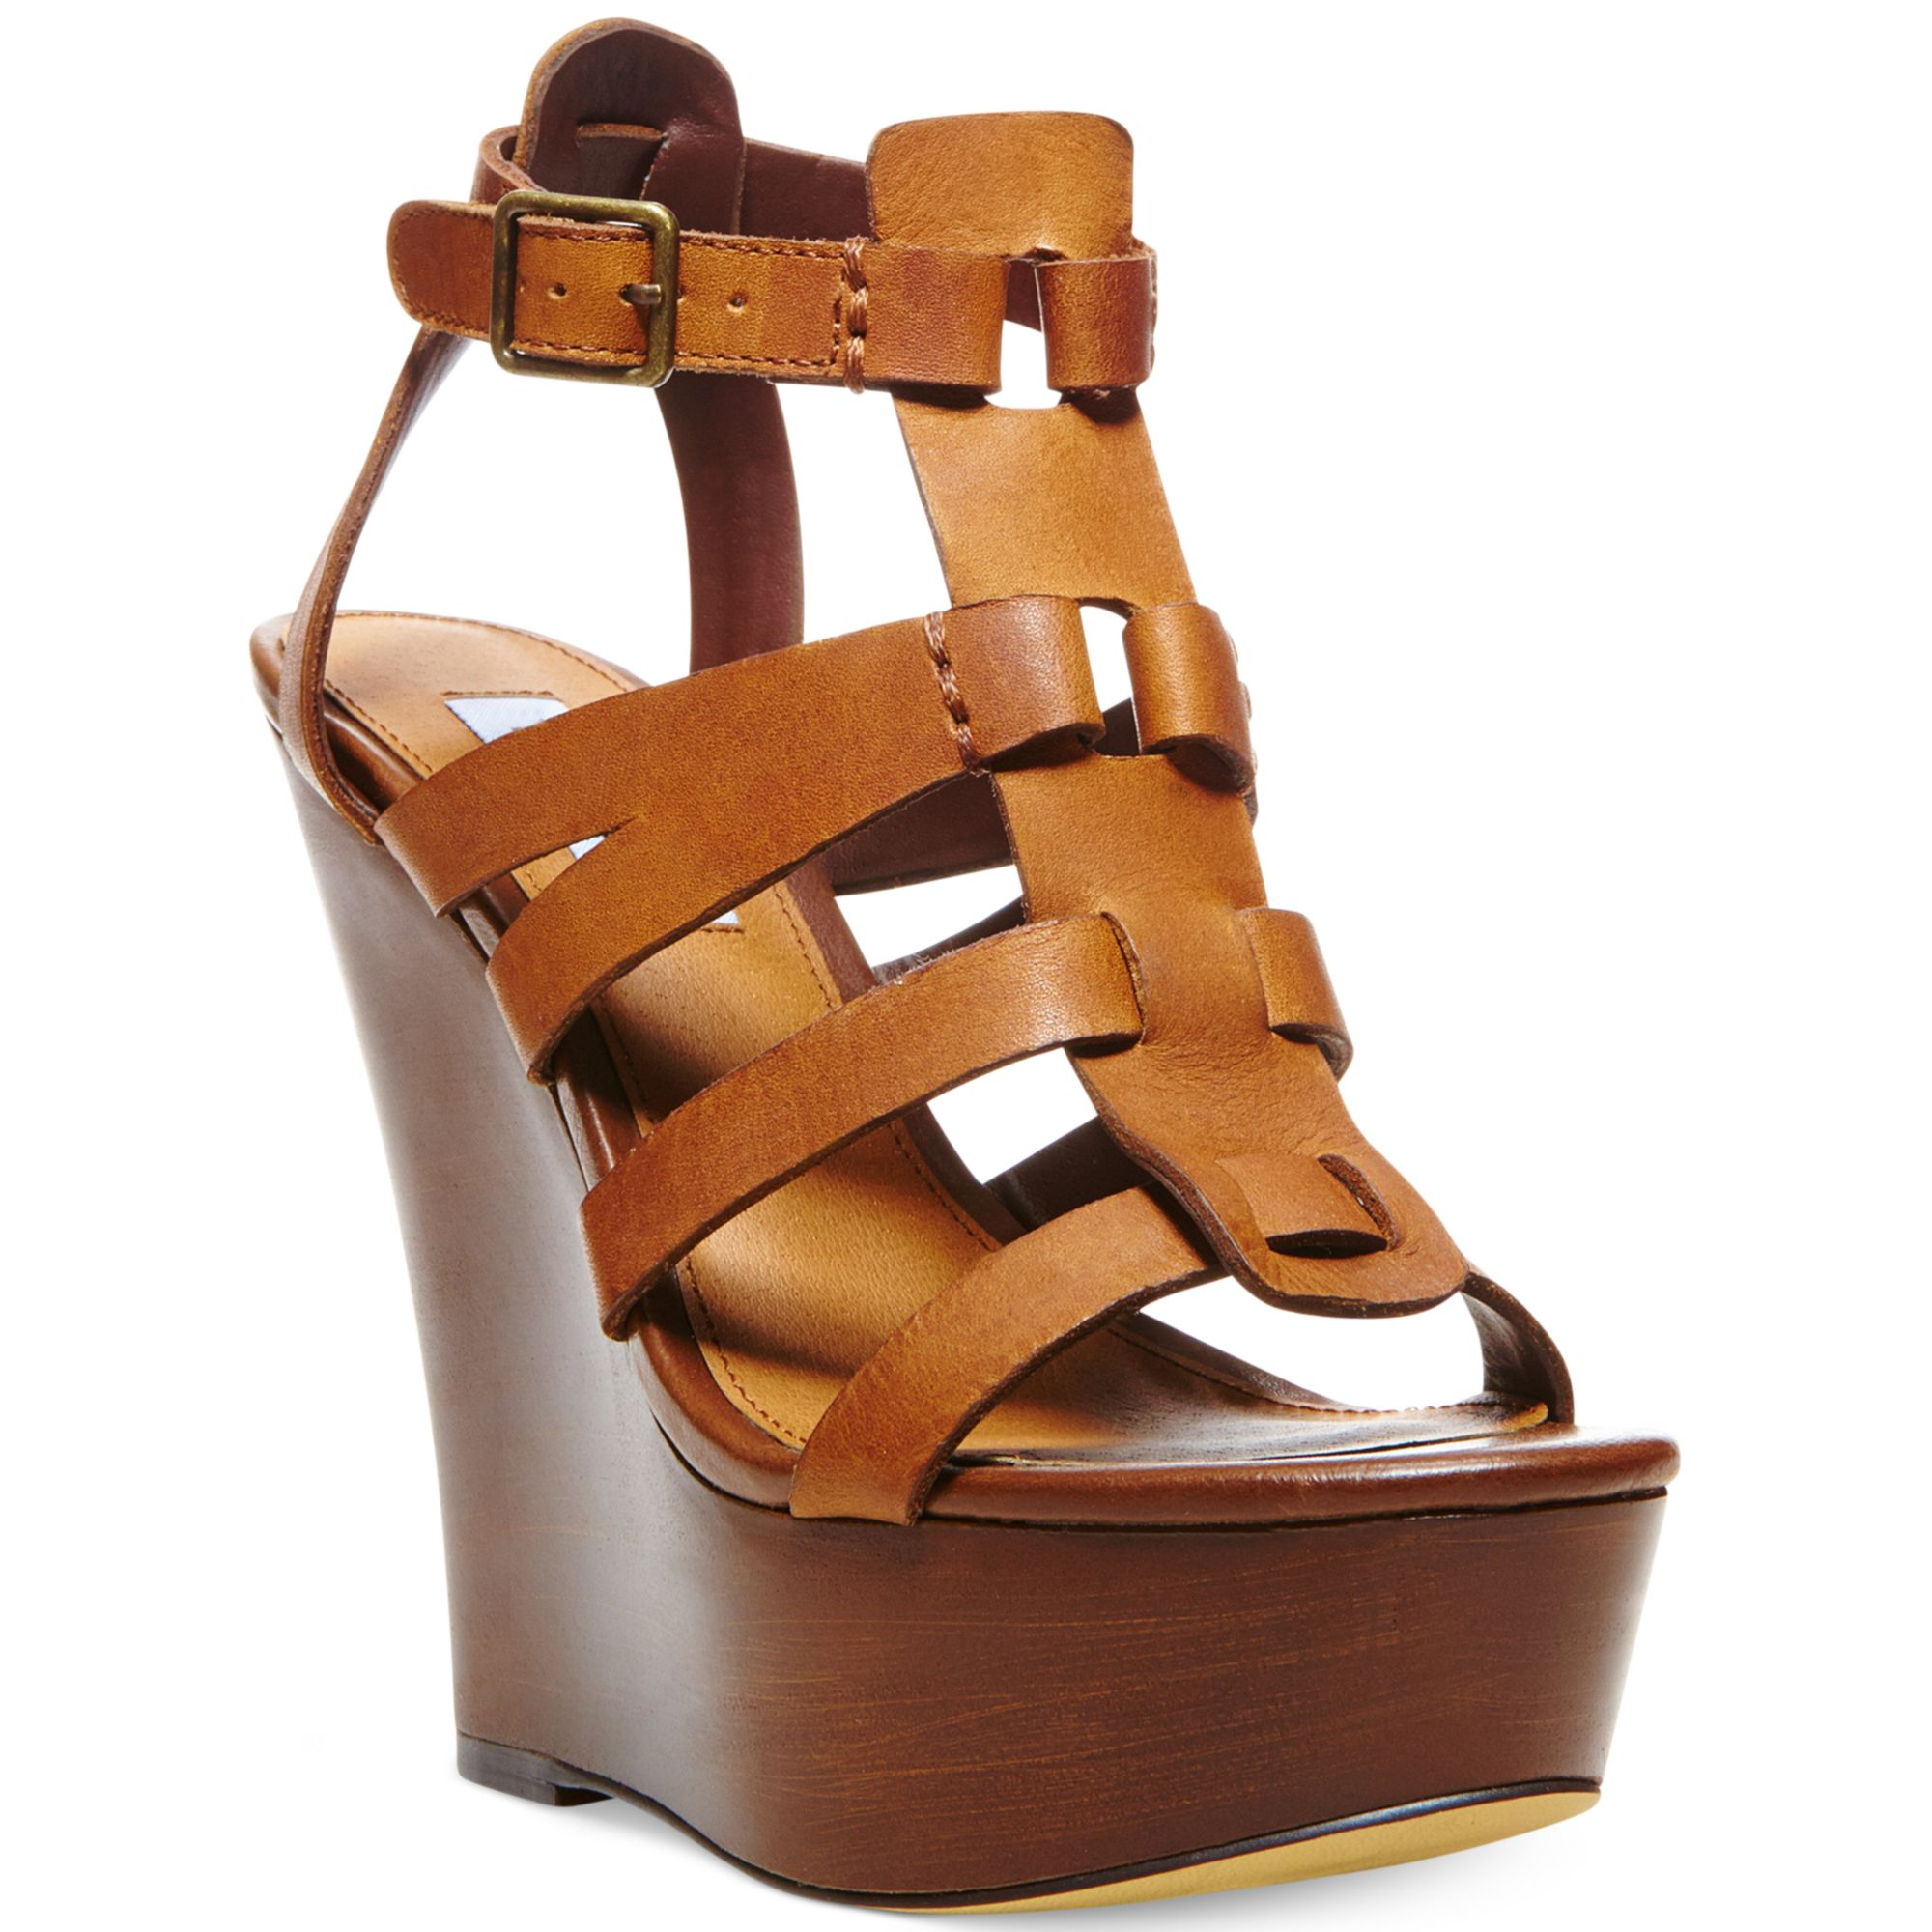 Womens sandals wedges - Brown Leather Wedges Shoes Brown Leather Wedges Shoes Gallery